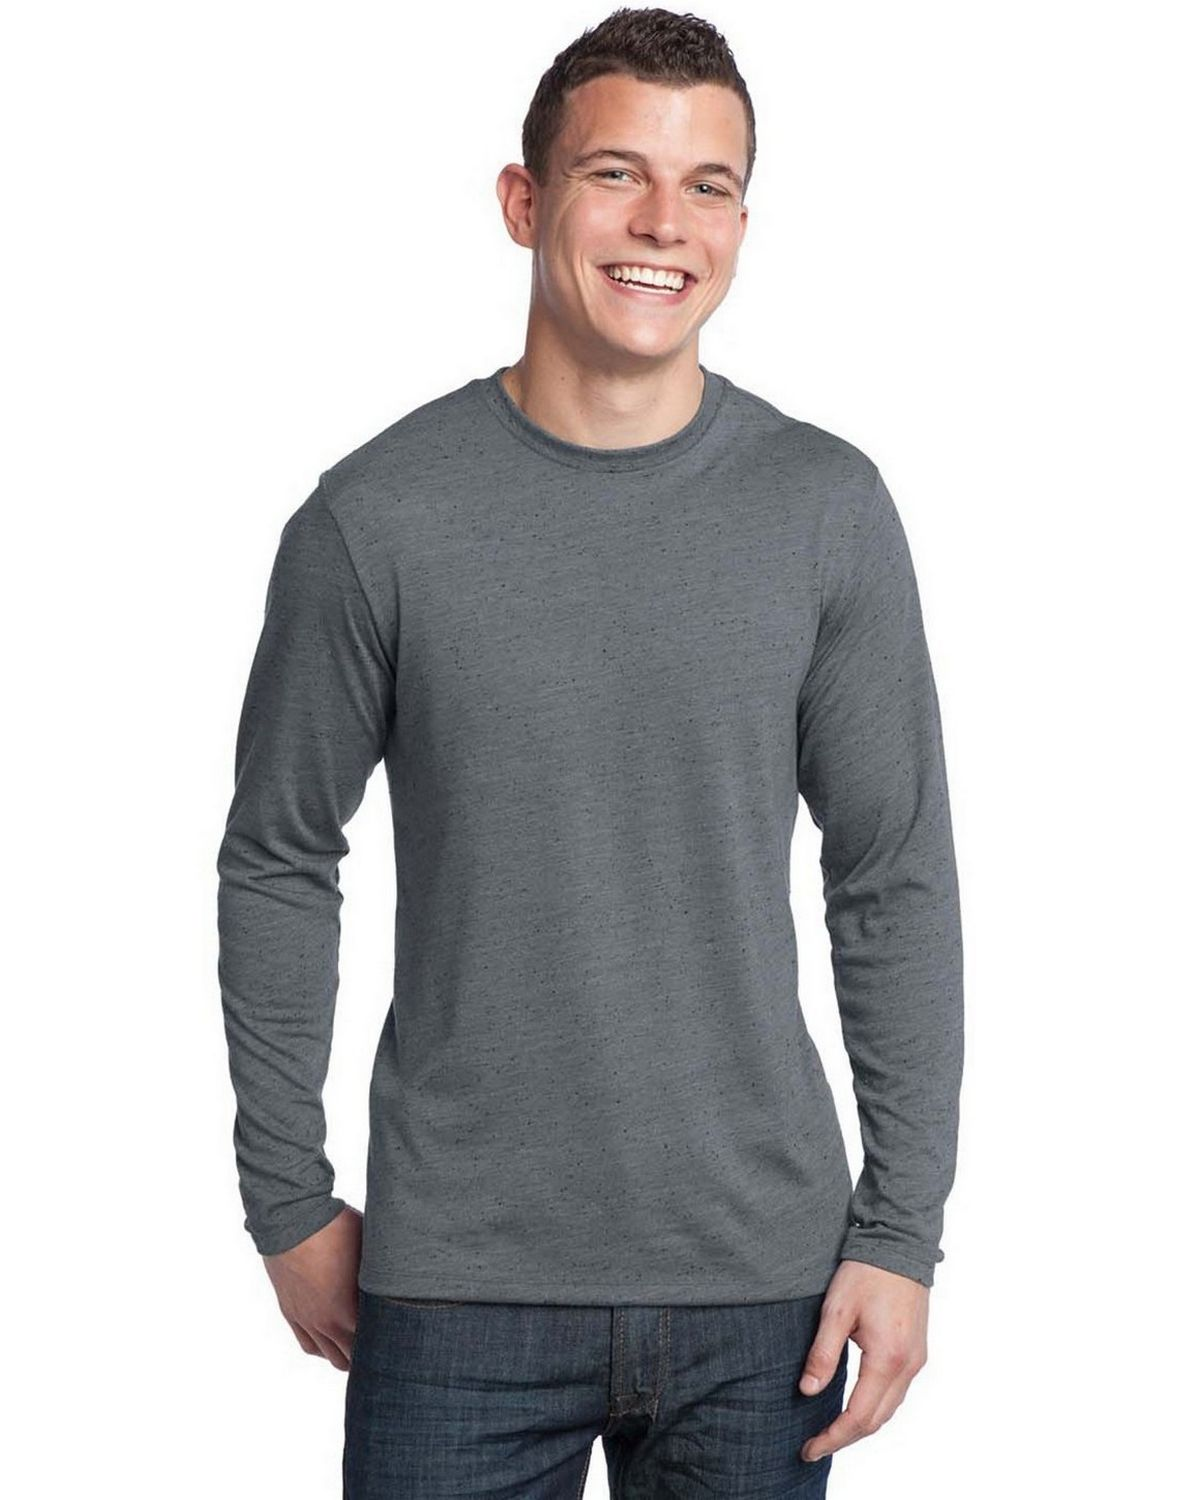 District DT171 Young Mens Textured Long Sleeve Tee